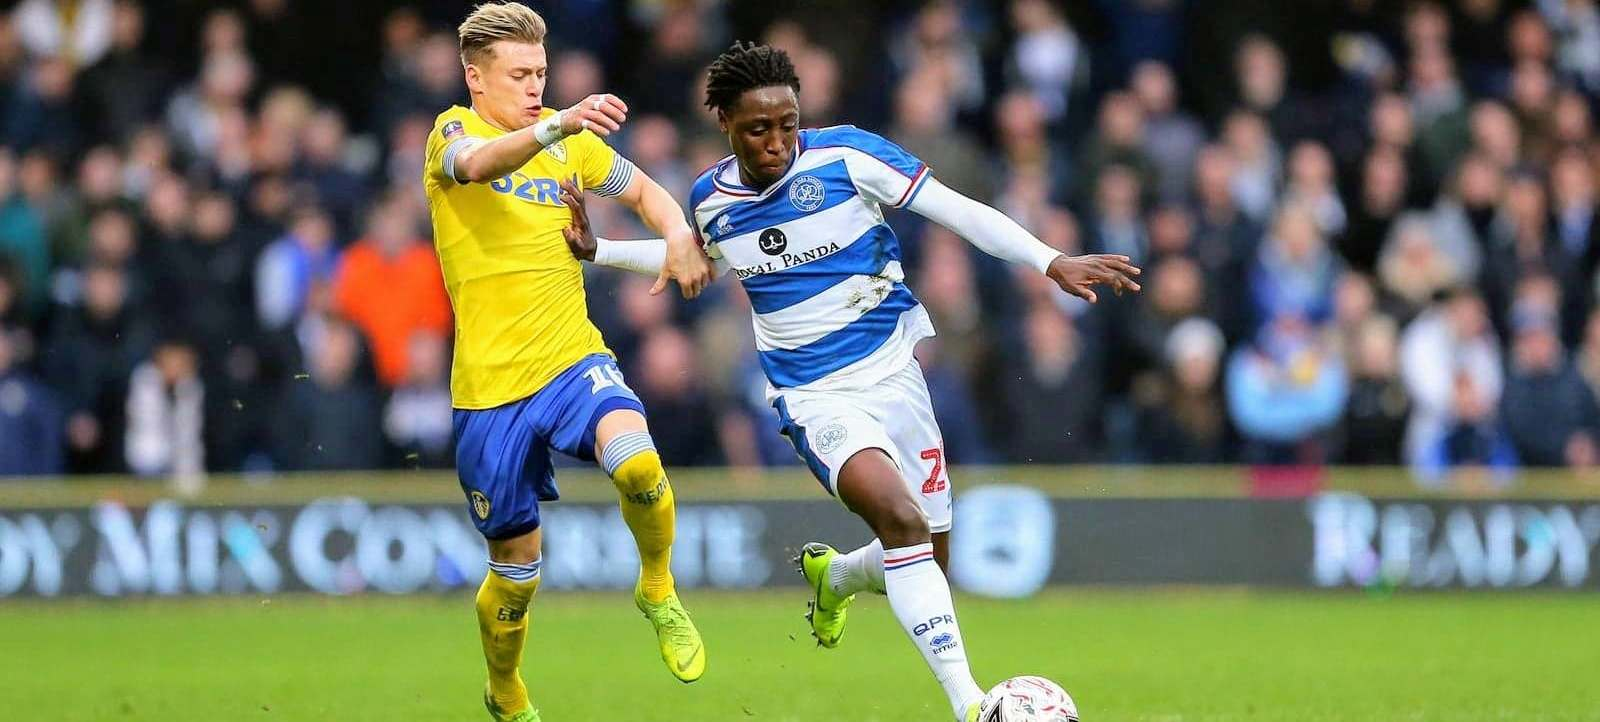 Osman Kakay in action against Leeds in Emirates FA Cup win at Loftus Road on Sunday.